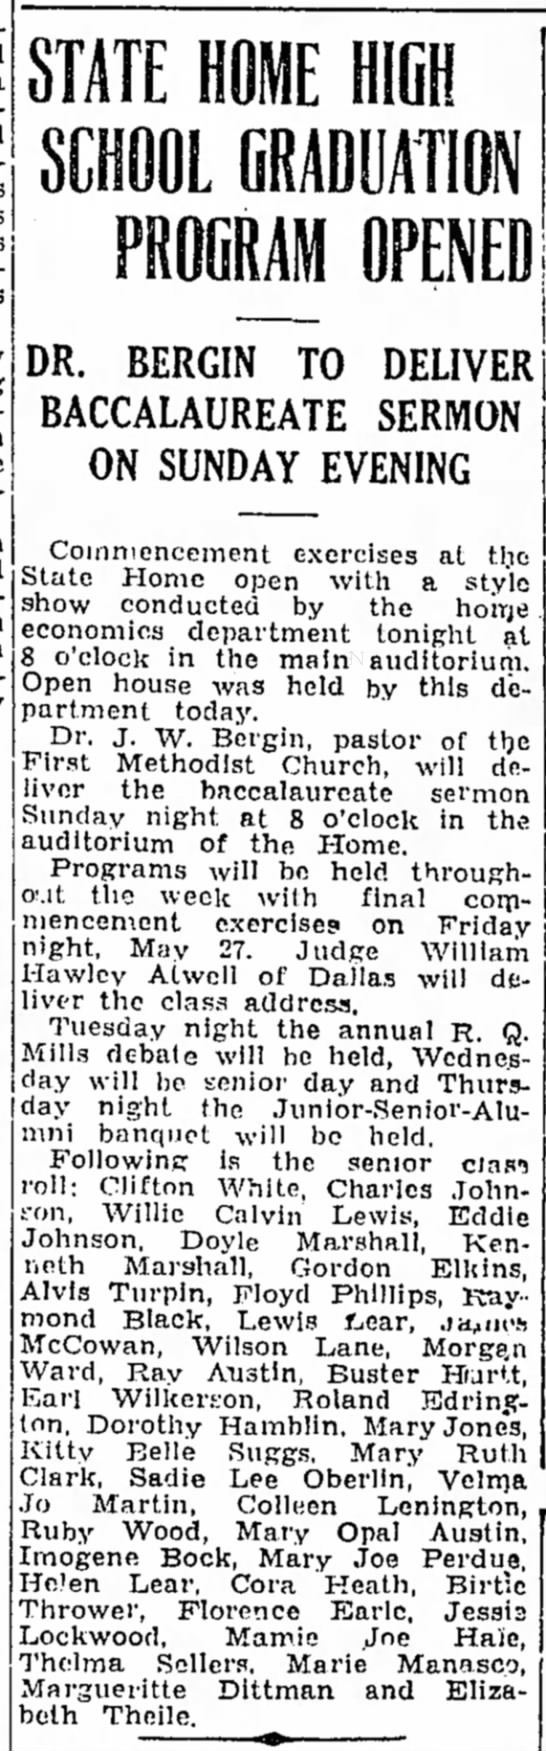 Marie Manasco  May 20, 1932   Commencement - STATE HOME HIGH PROGRAM OPENED DR. BERGIN TO...